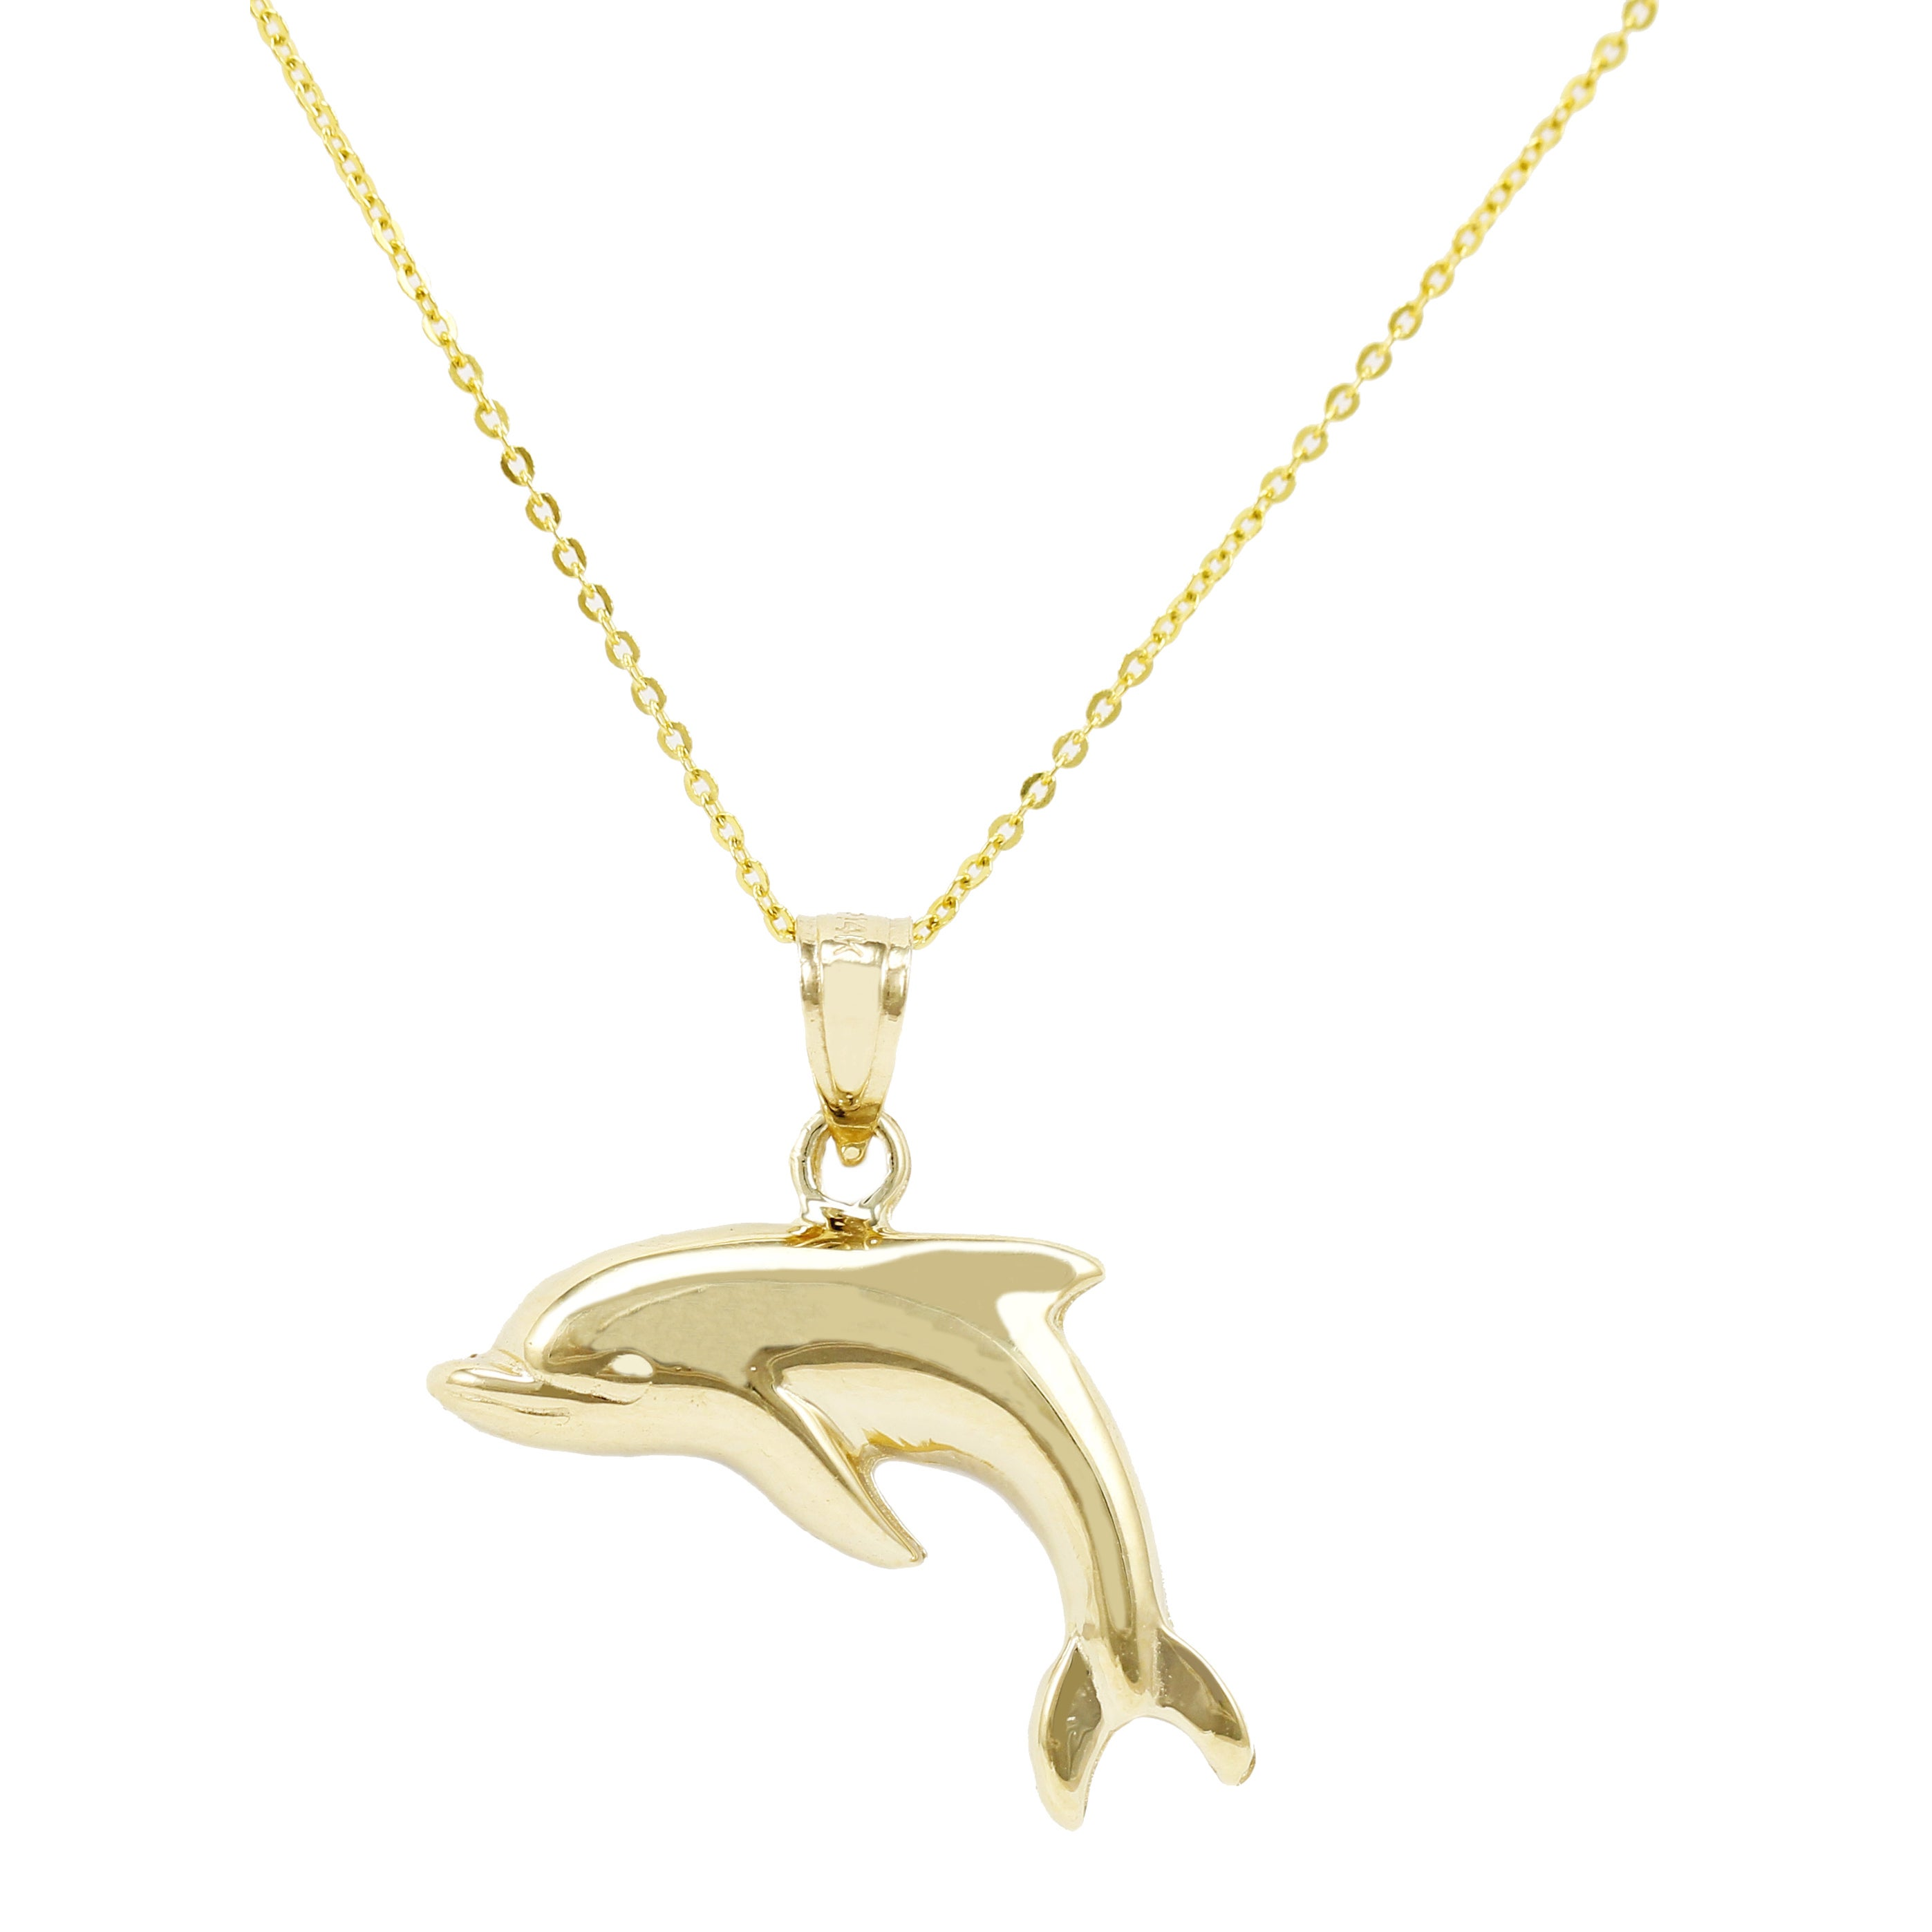 14k yellow gold dolphin necklace ships to canada overstock 14k yellow gold dolphin necklace ships to canada overstock 17395204 aloadofball